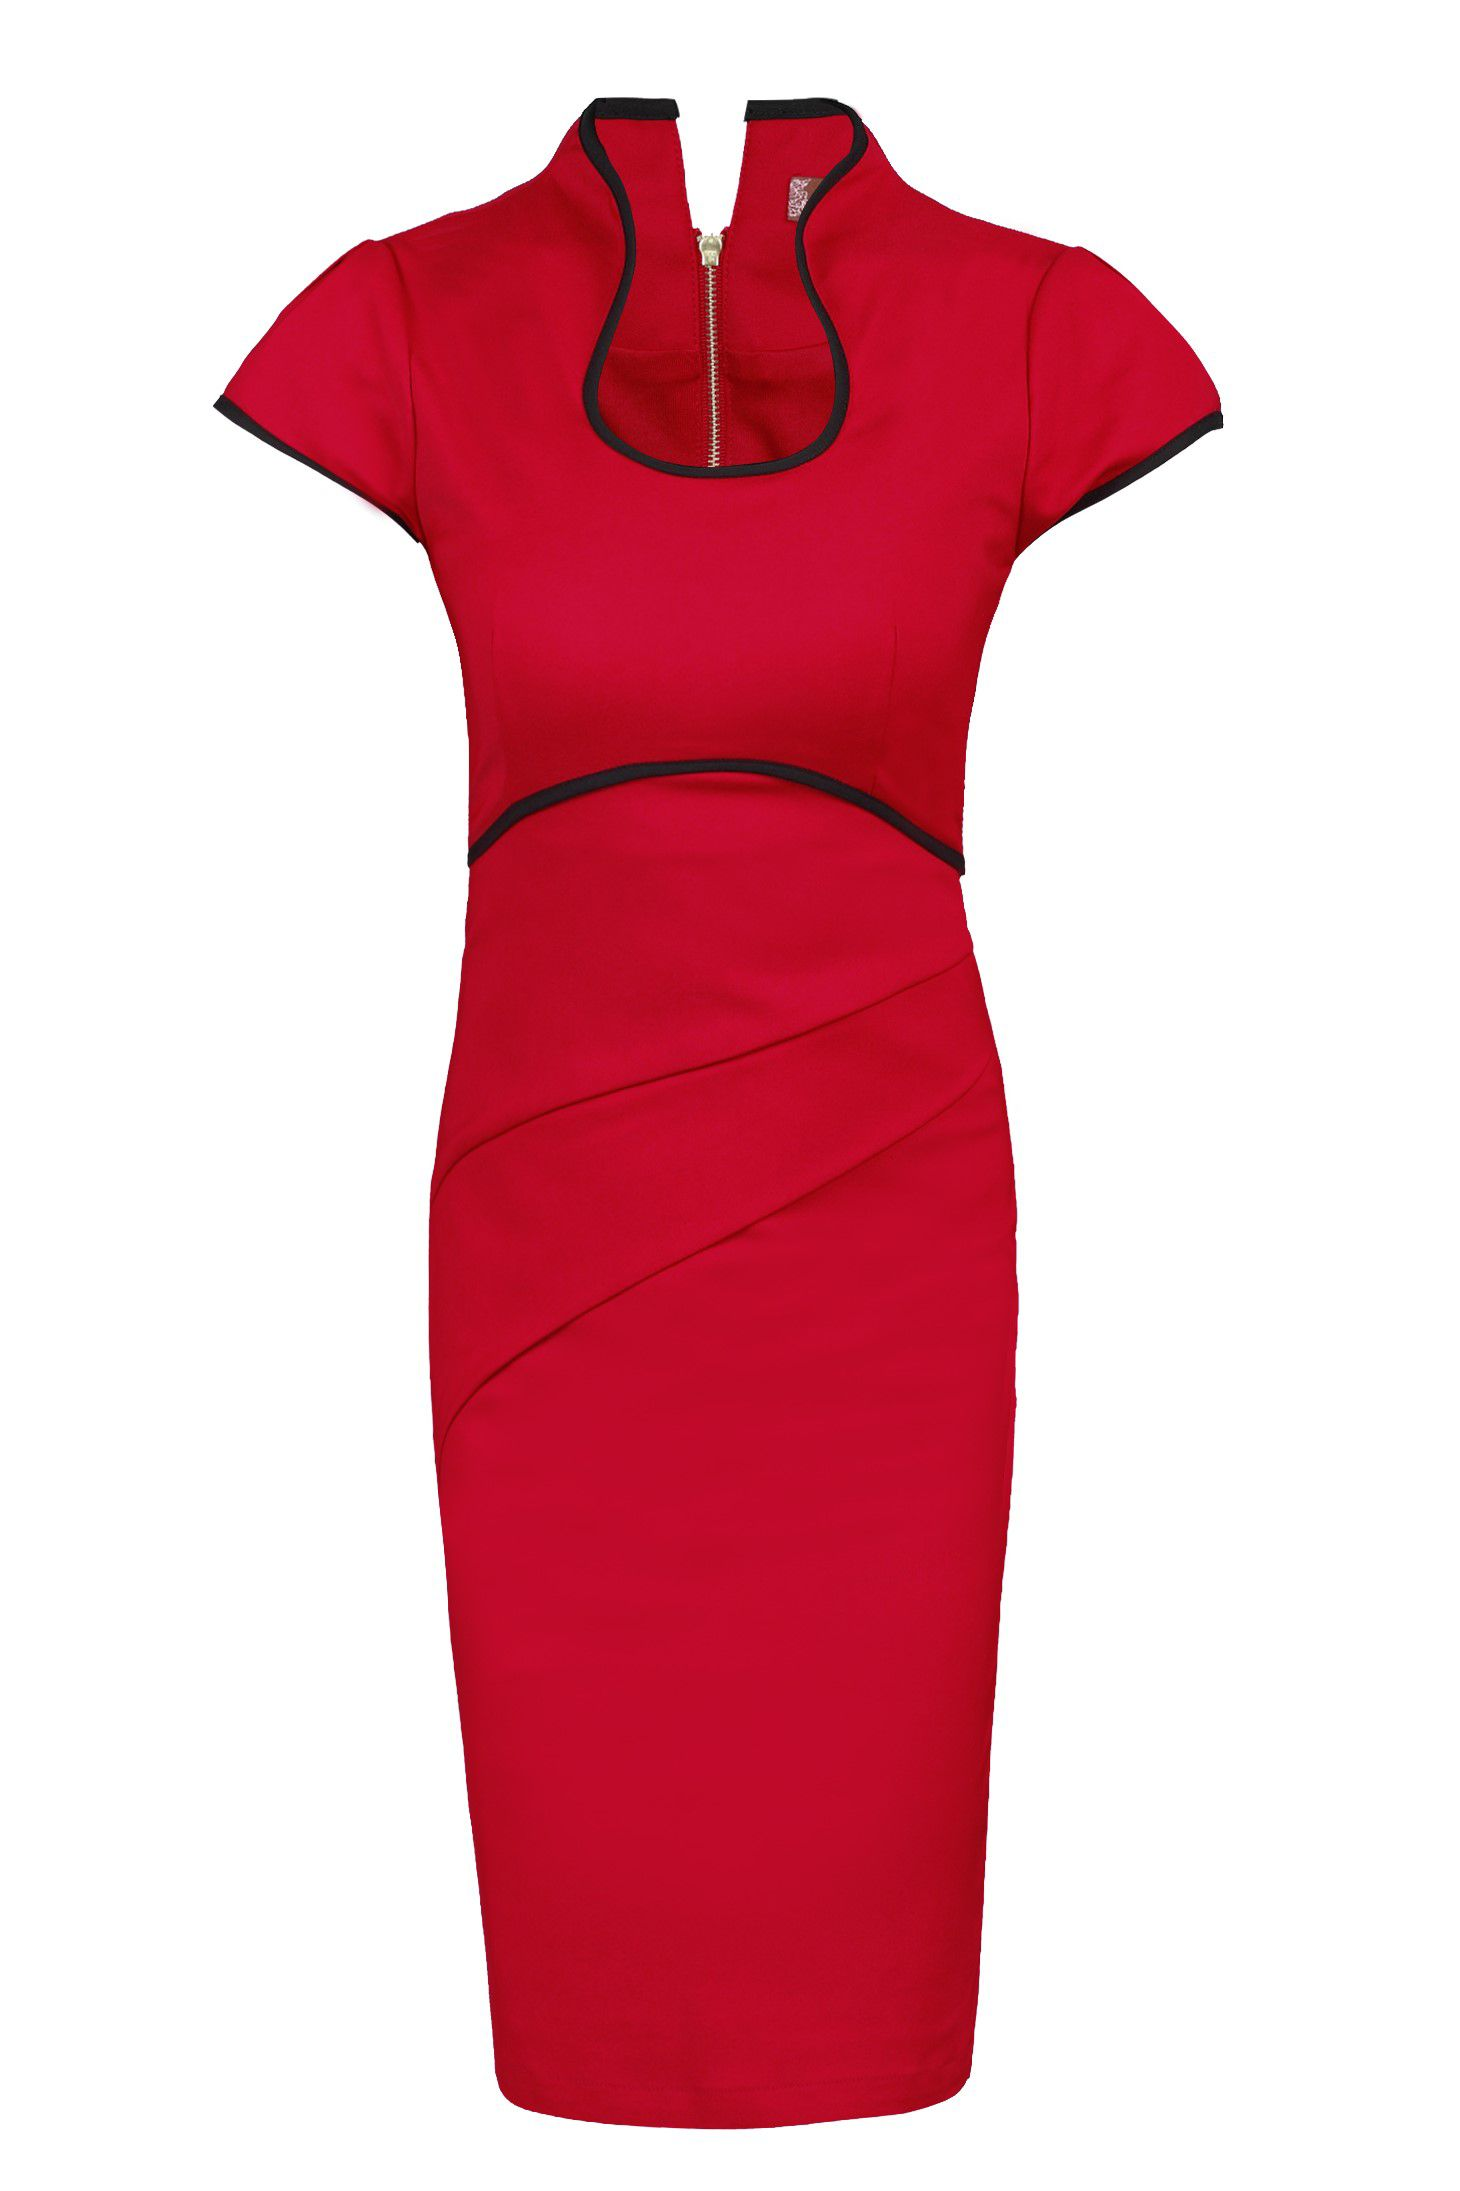 Jolie Moi Contrast Trimmed High Collar Dress, Red